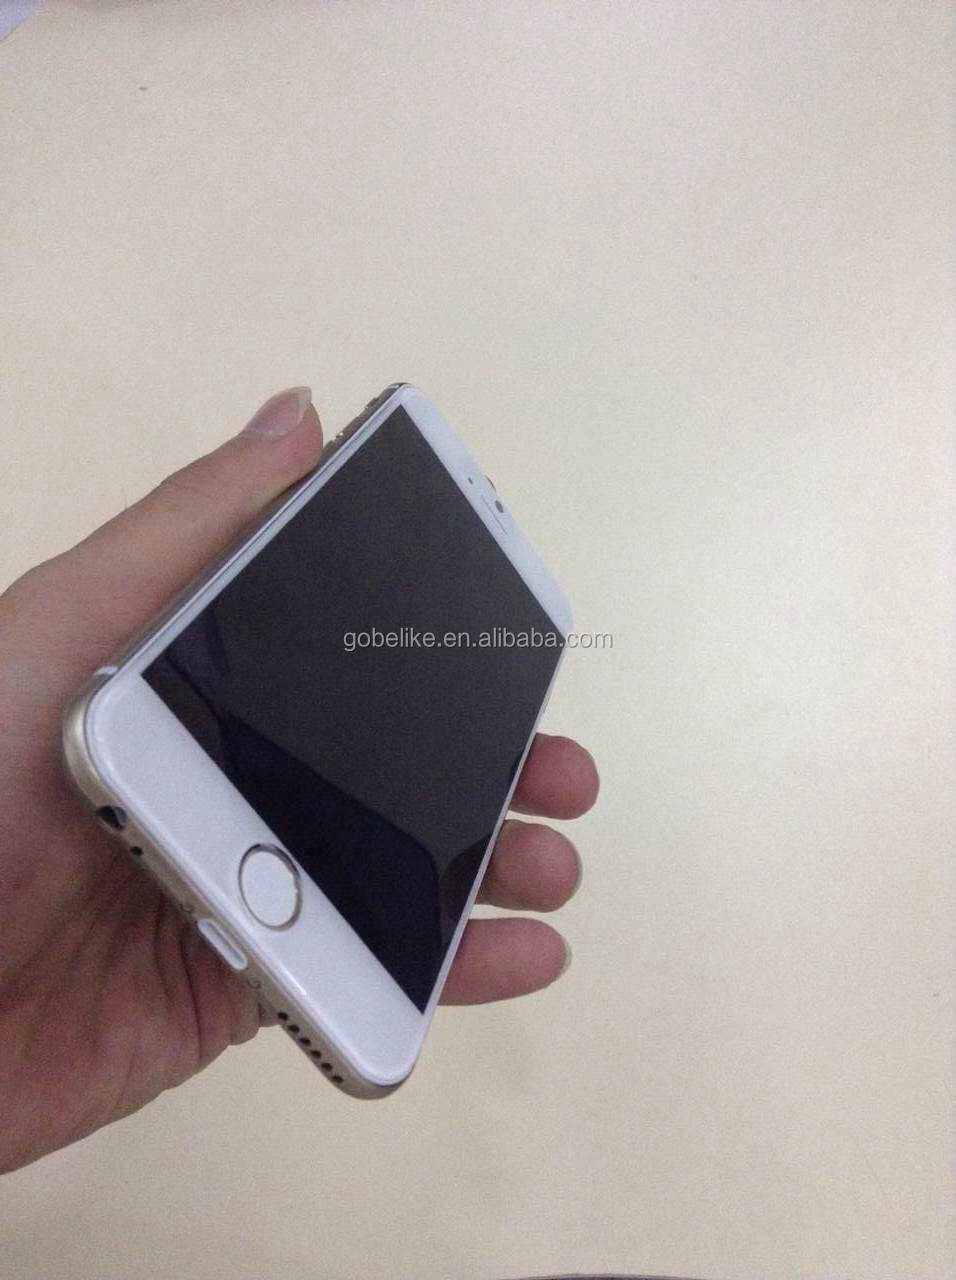 2014 new product!!! for iPhone 6 PET screen protector, factory supply!